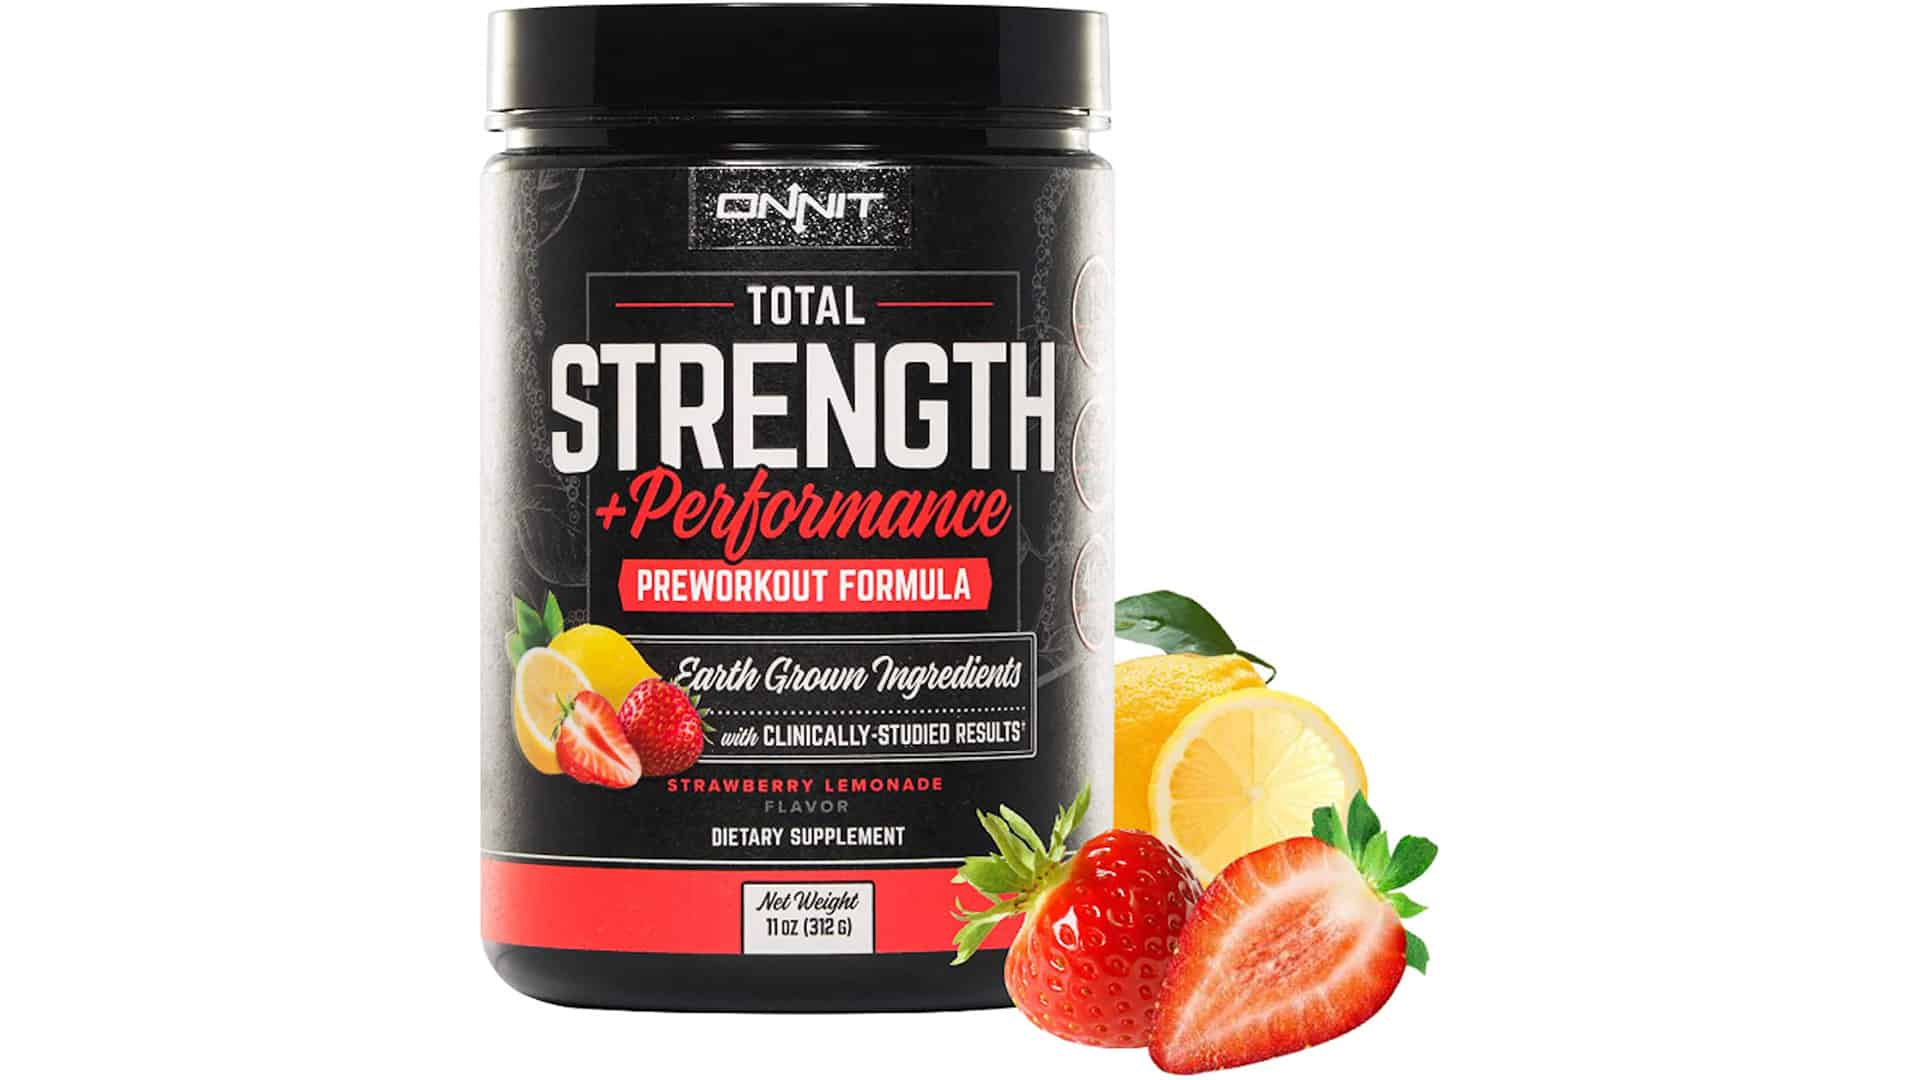 The Onnit Total Strength and Performance